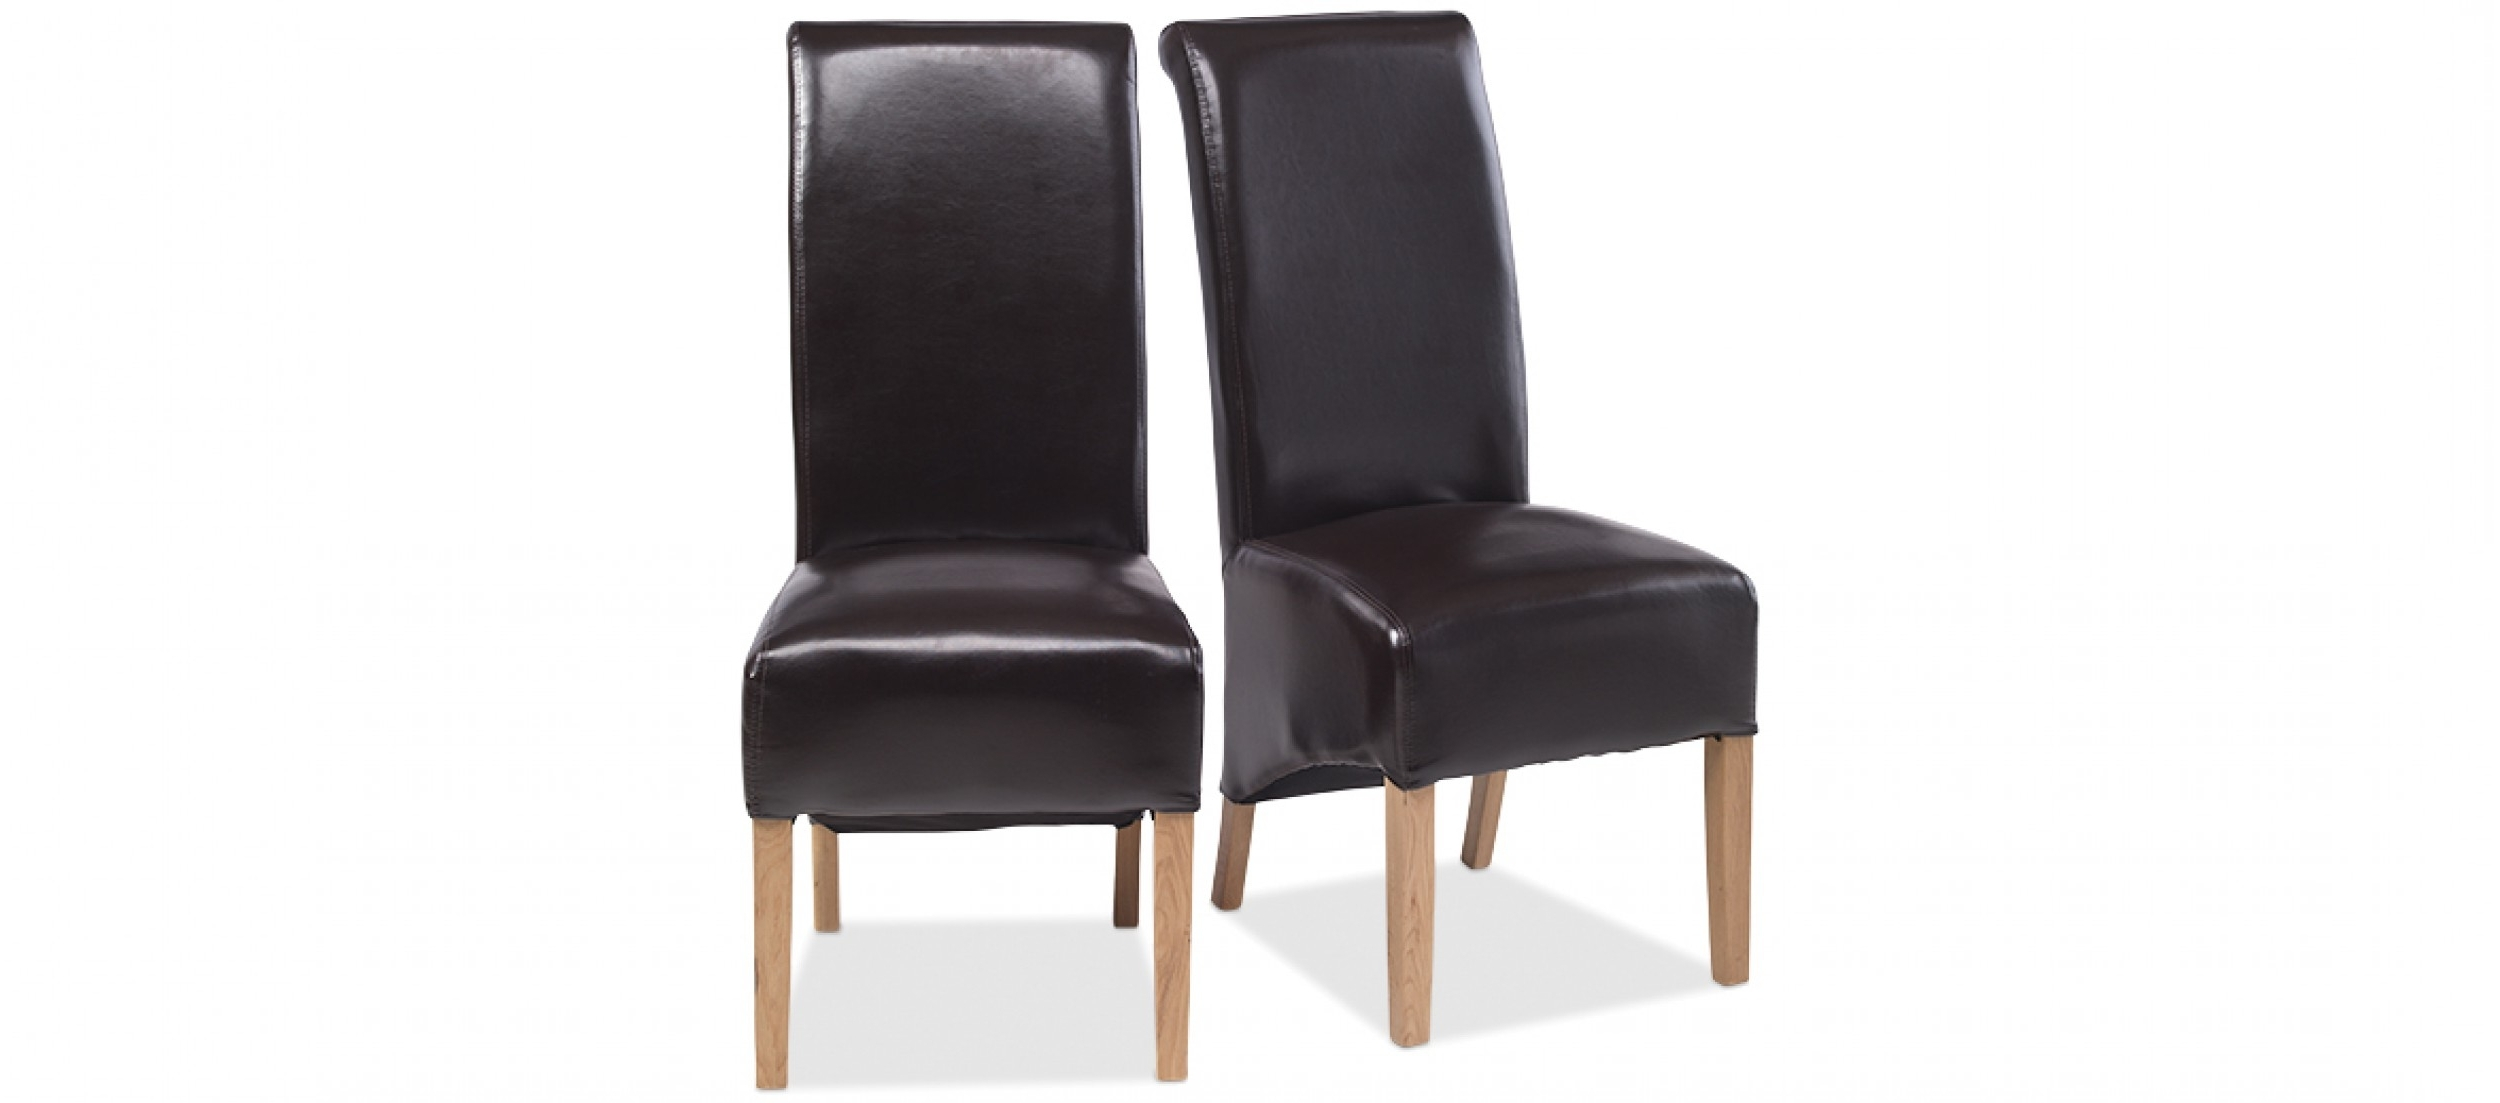 2018 Cube Oak Bonded Leather Dining Chairs Brown – Pair (Gallery 23 of 25)